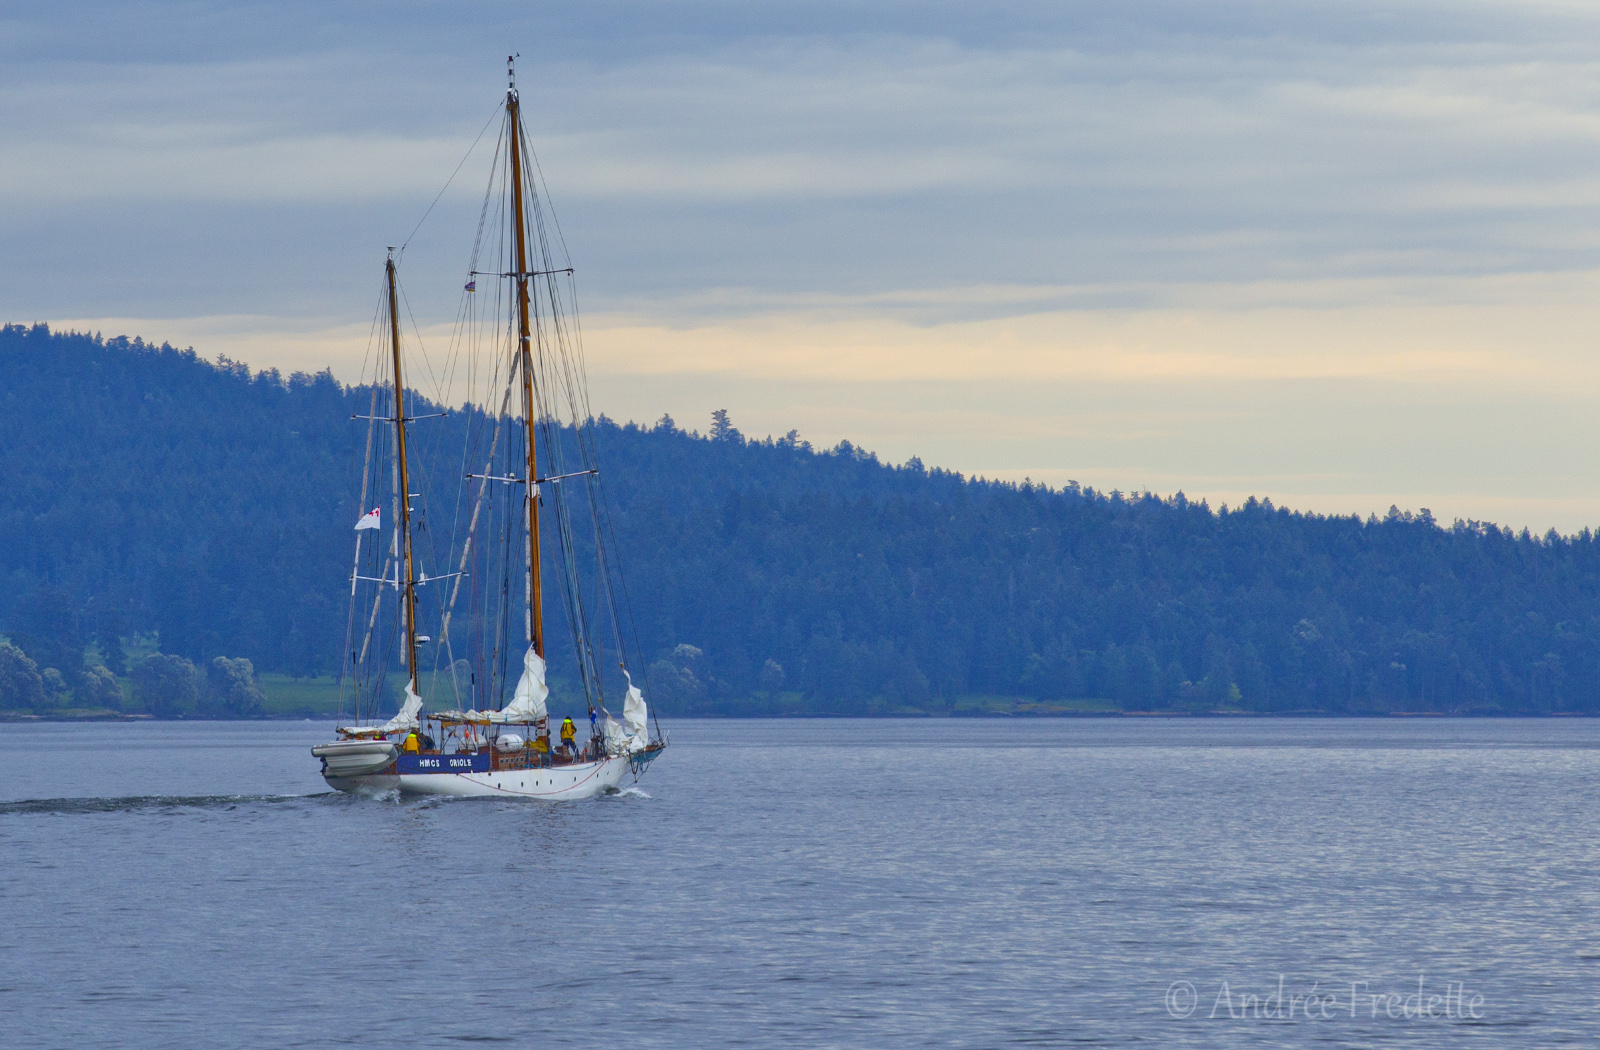 HMCS Oriole, oldest commissioned vessel in the Royal Canadian Navy. Photo by Andrée Fredette